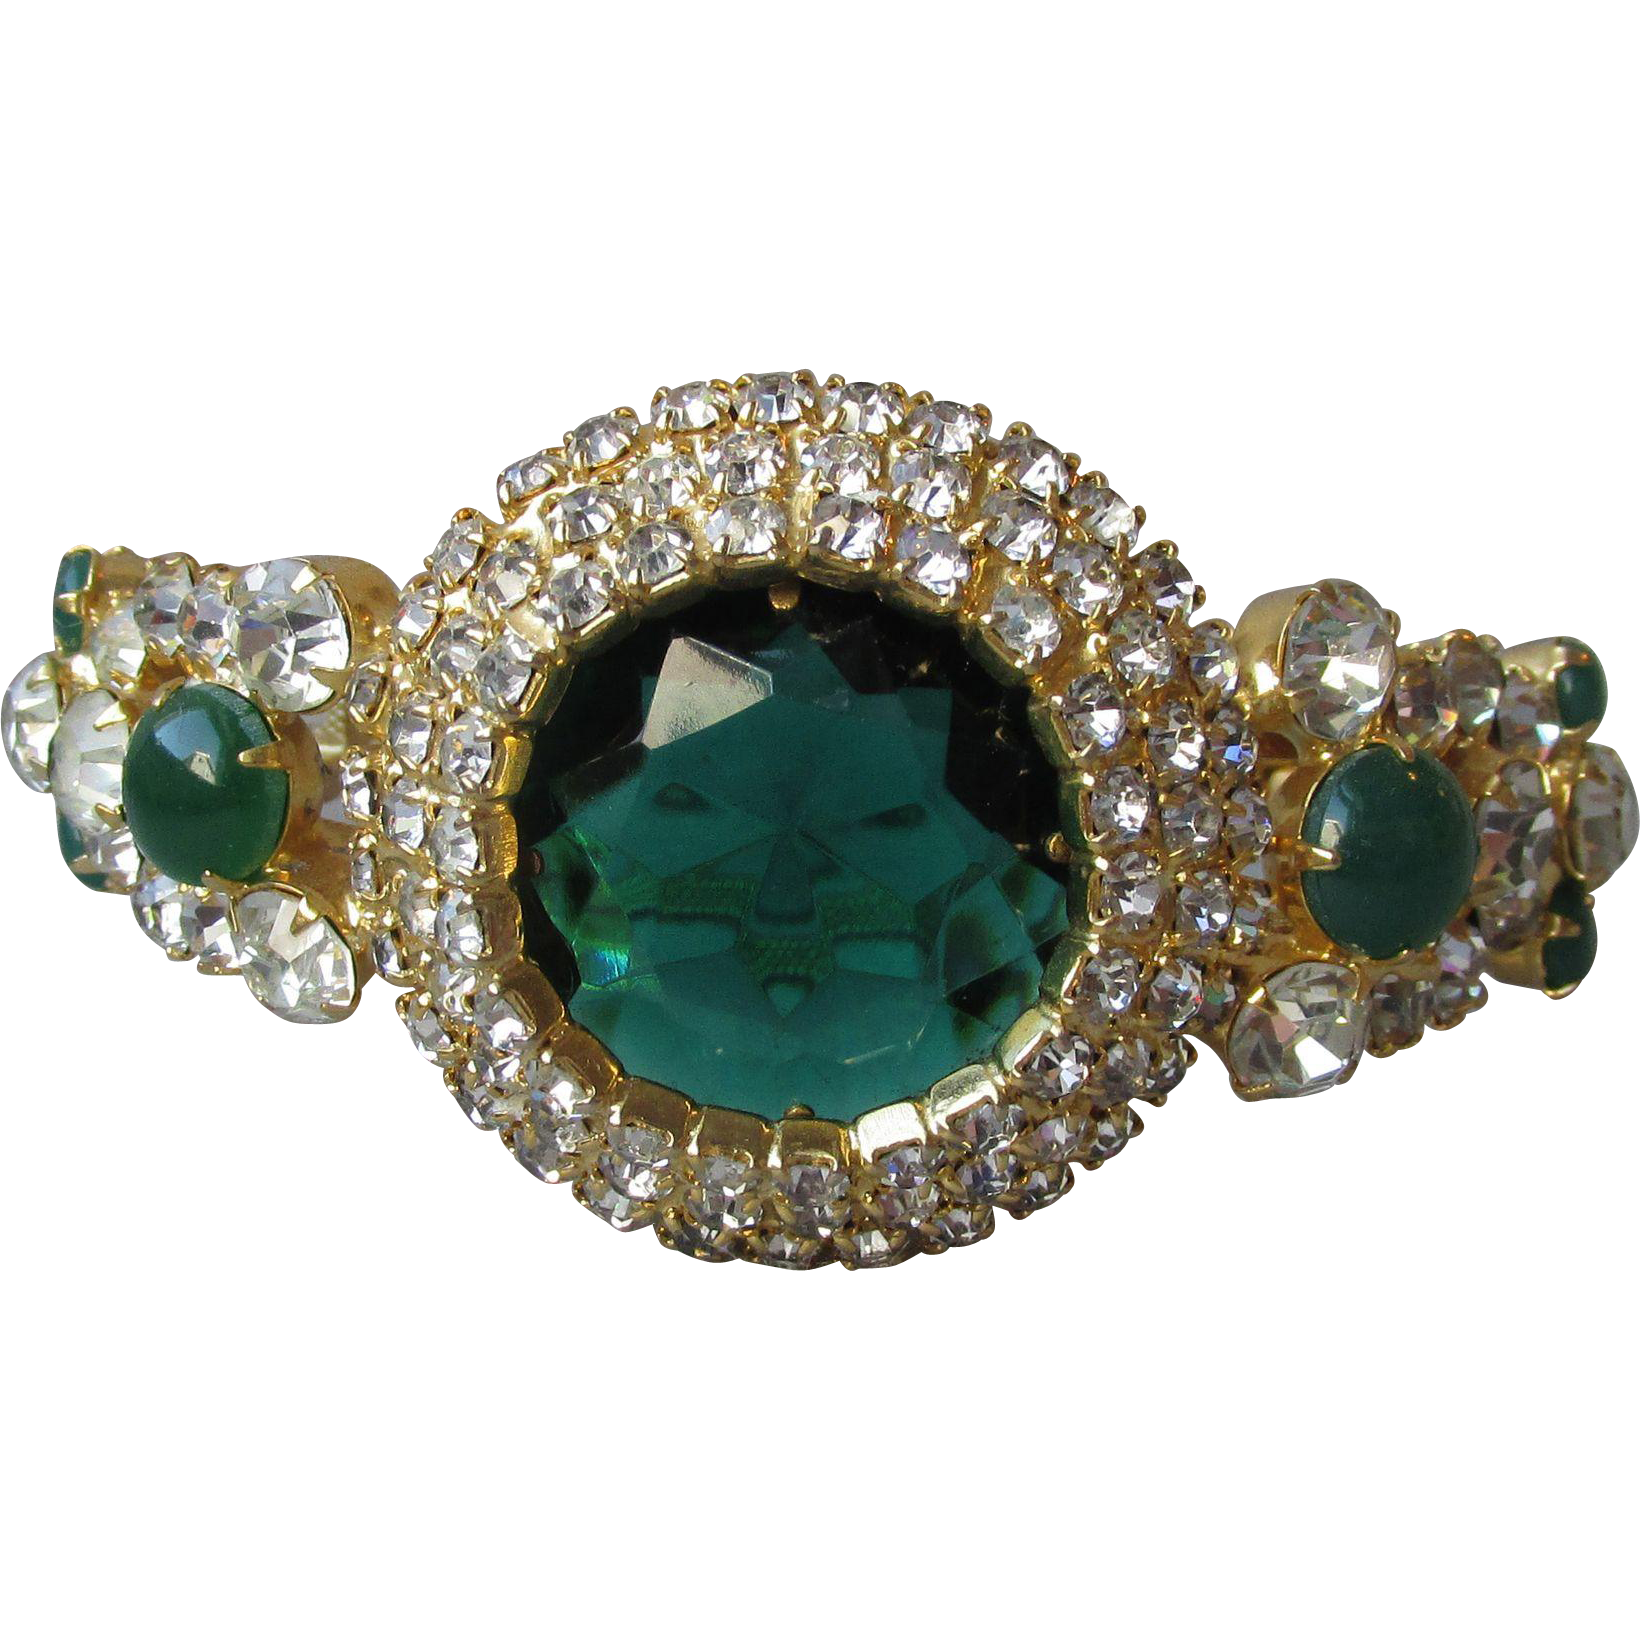 Vintage Juliana DeLizza & Elster Emerald Green Rhinestone Hinged Bangle Bracelet